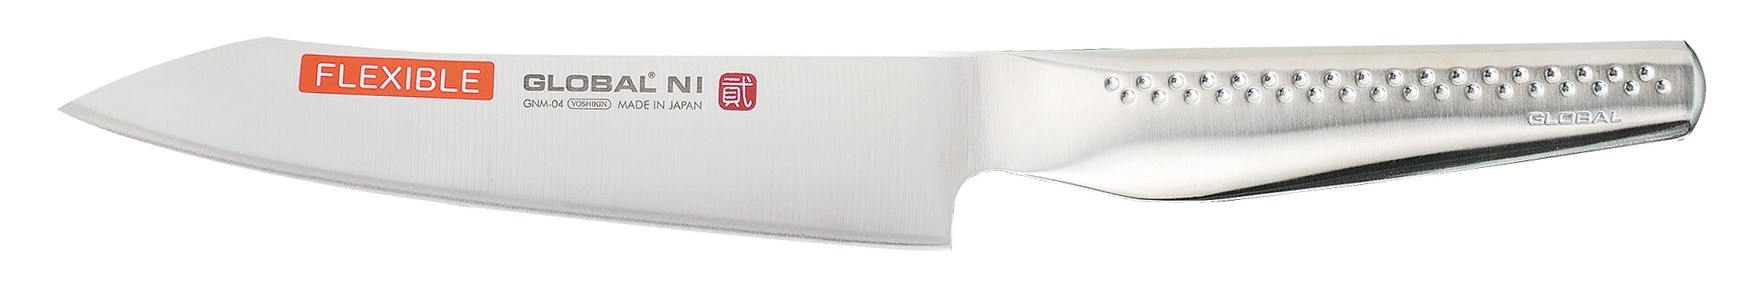 Global Knives NI Series 16cm Slicer Flexible Knife (GNM-04)